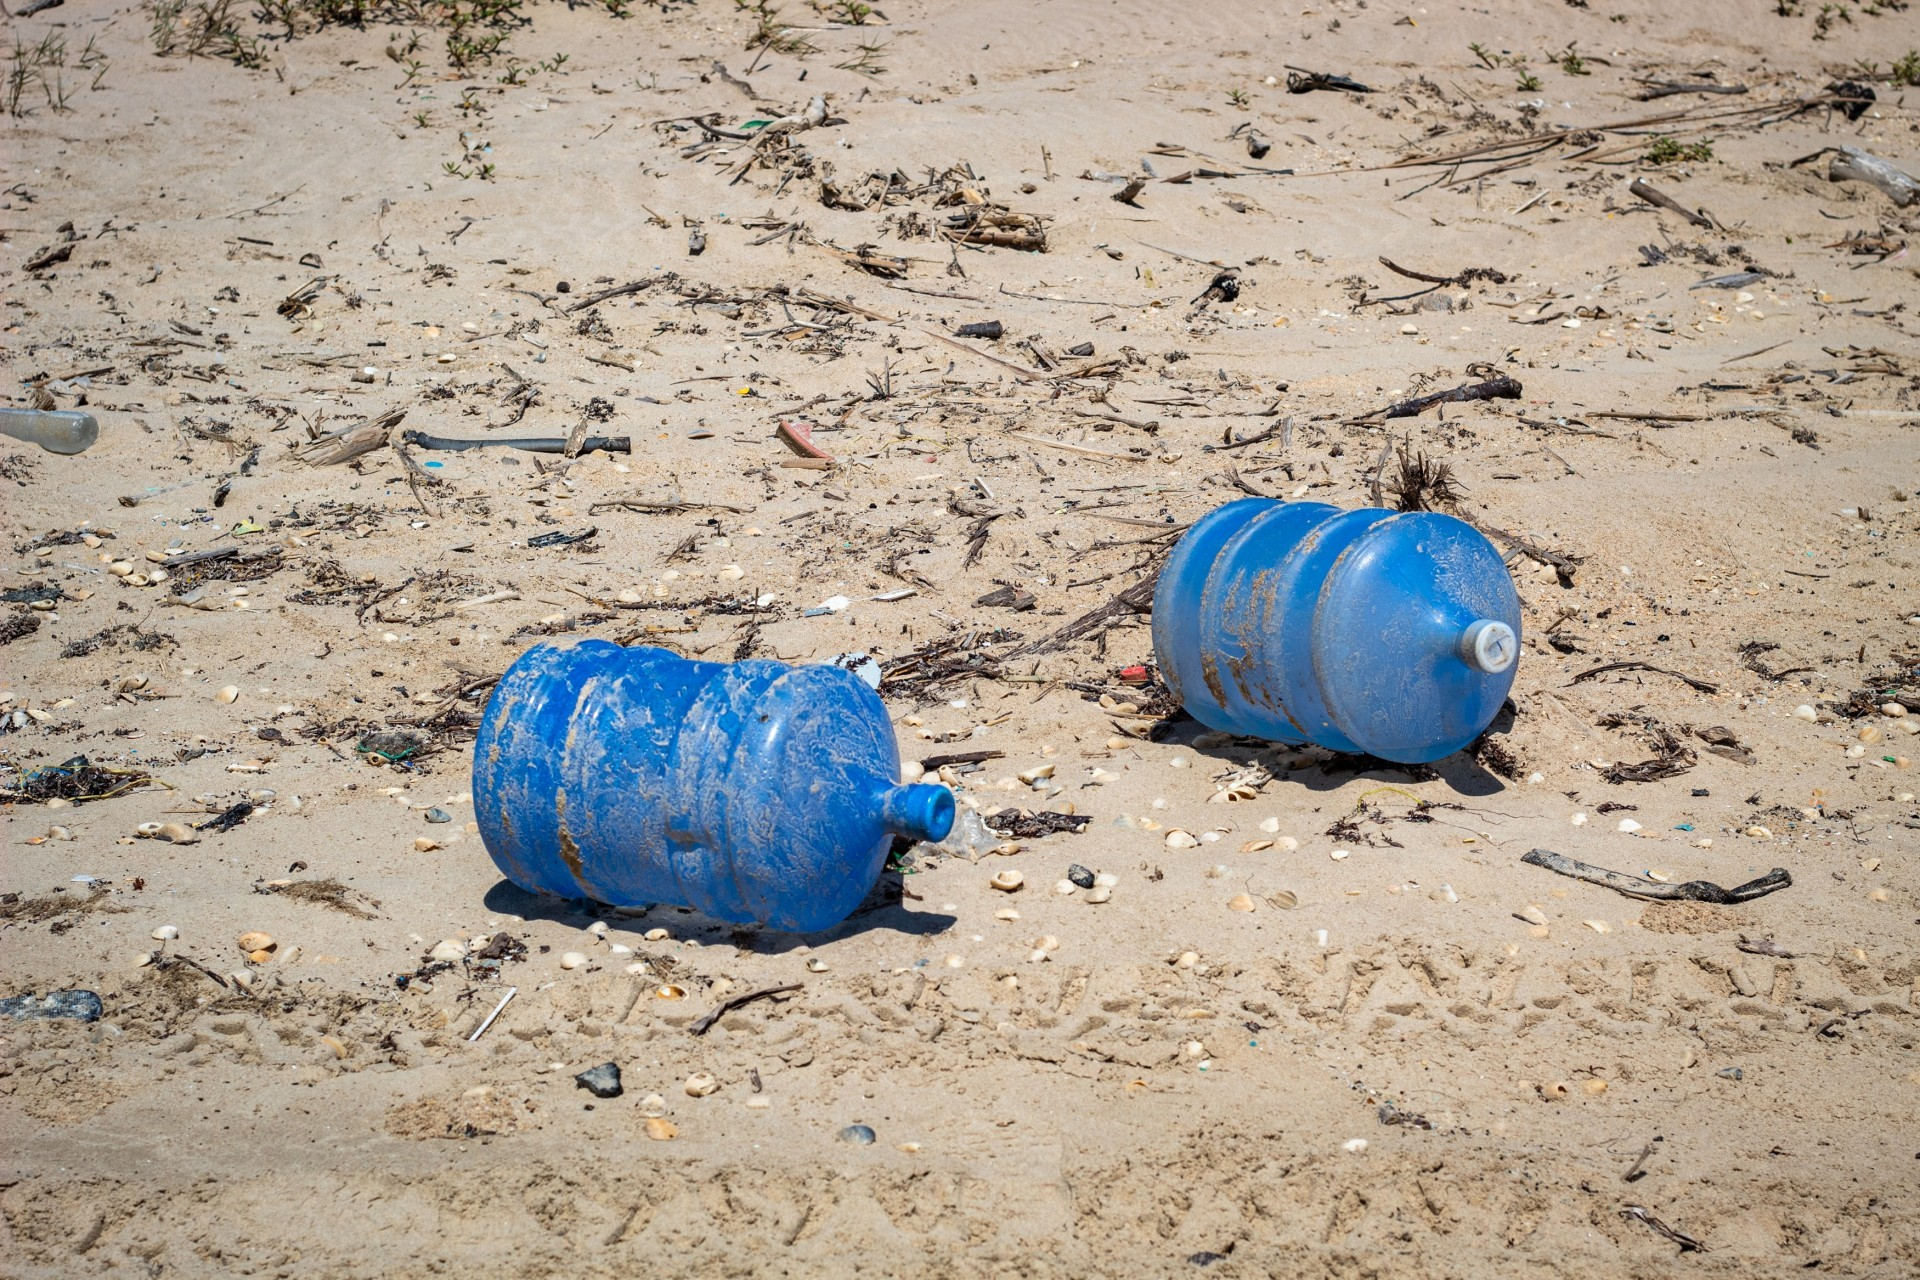 Large water carriers thrown into the sea and washed up on the beach